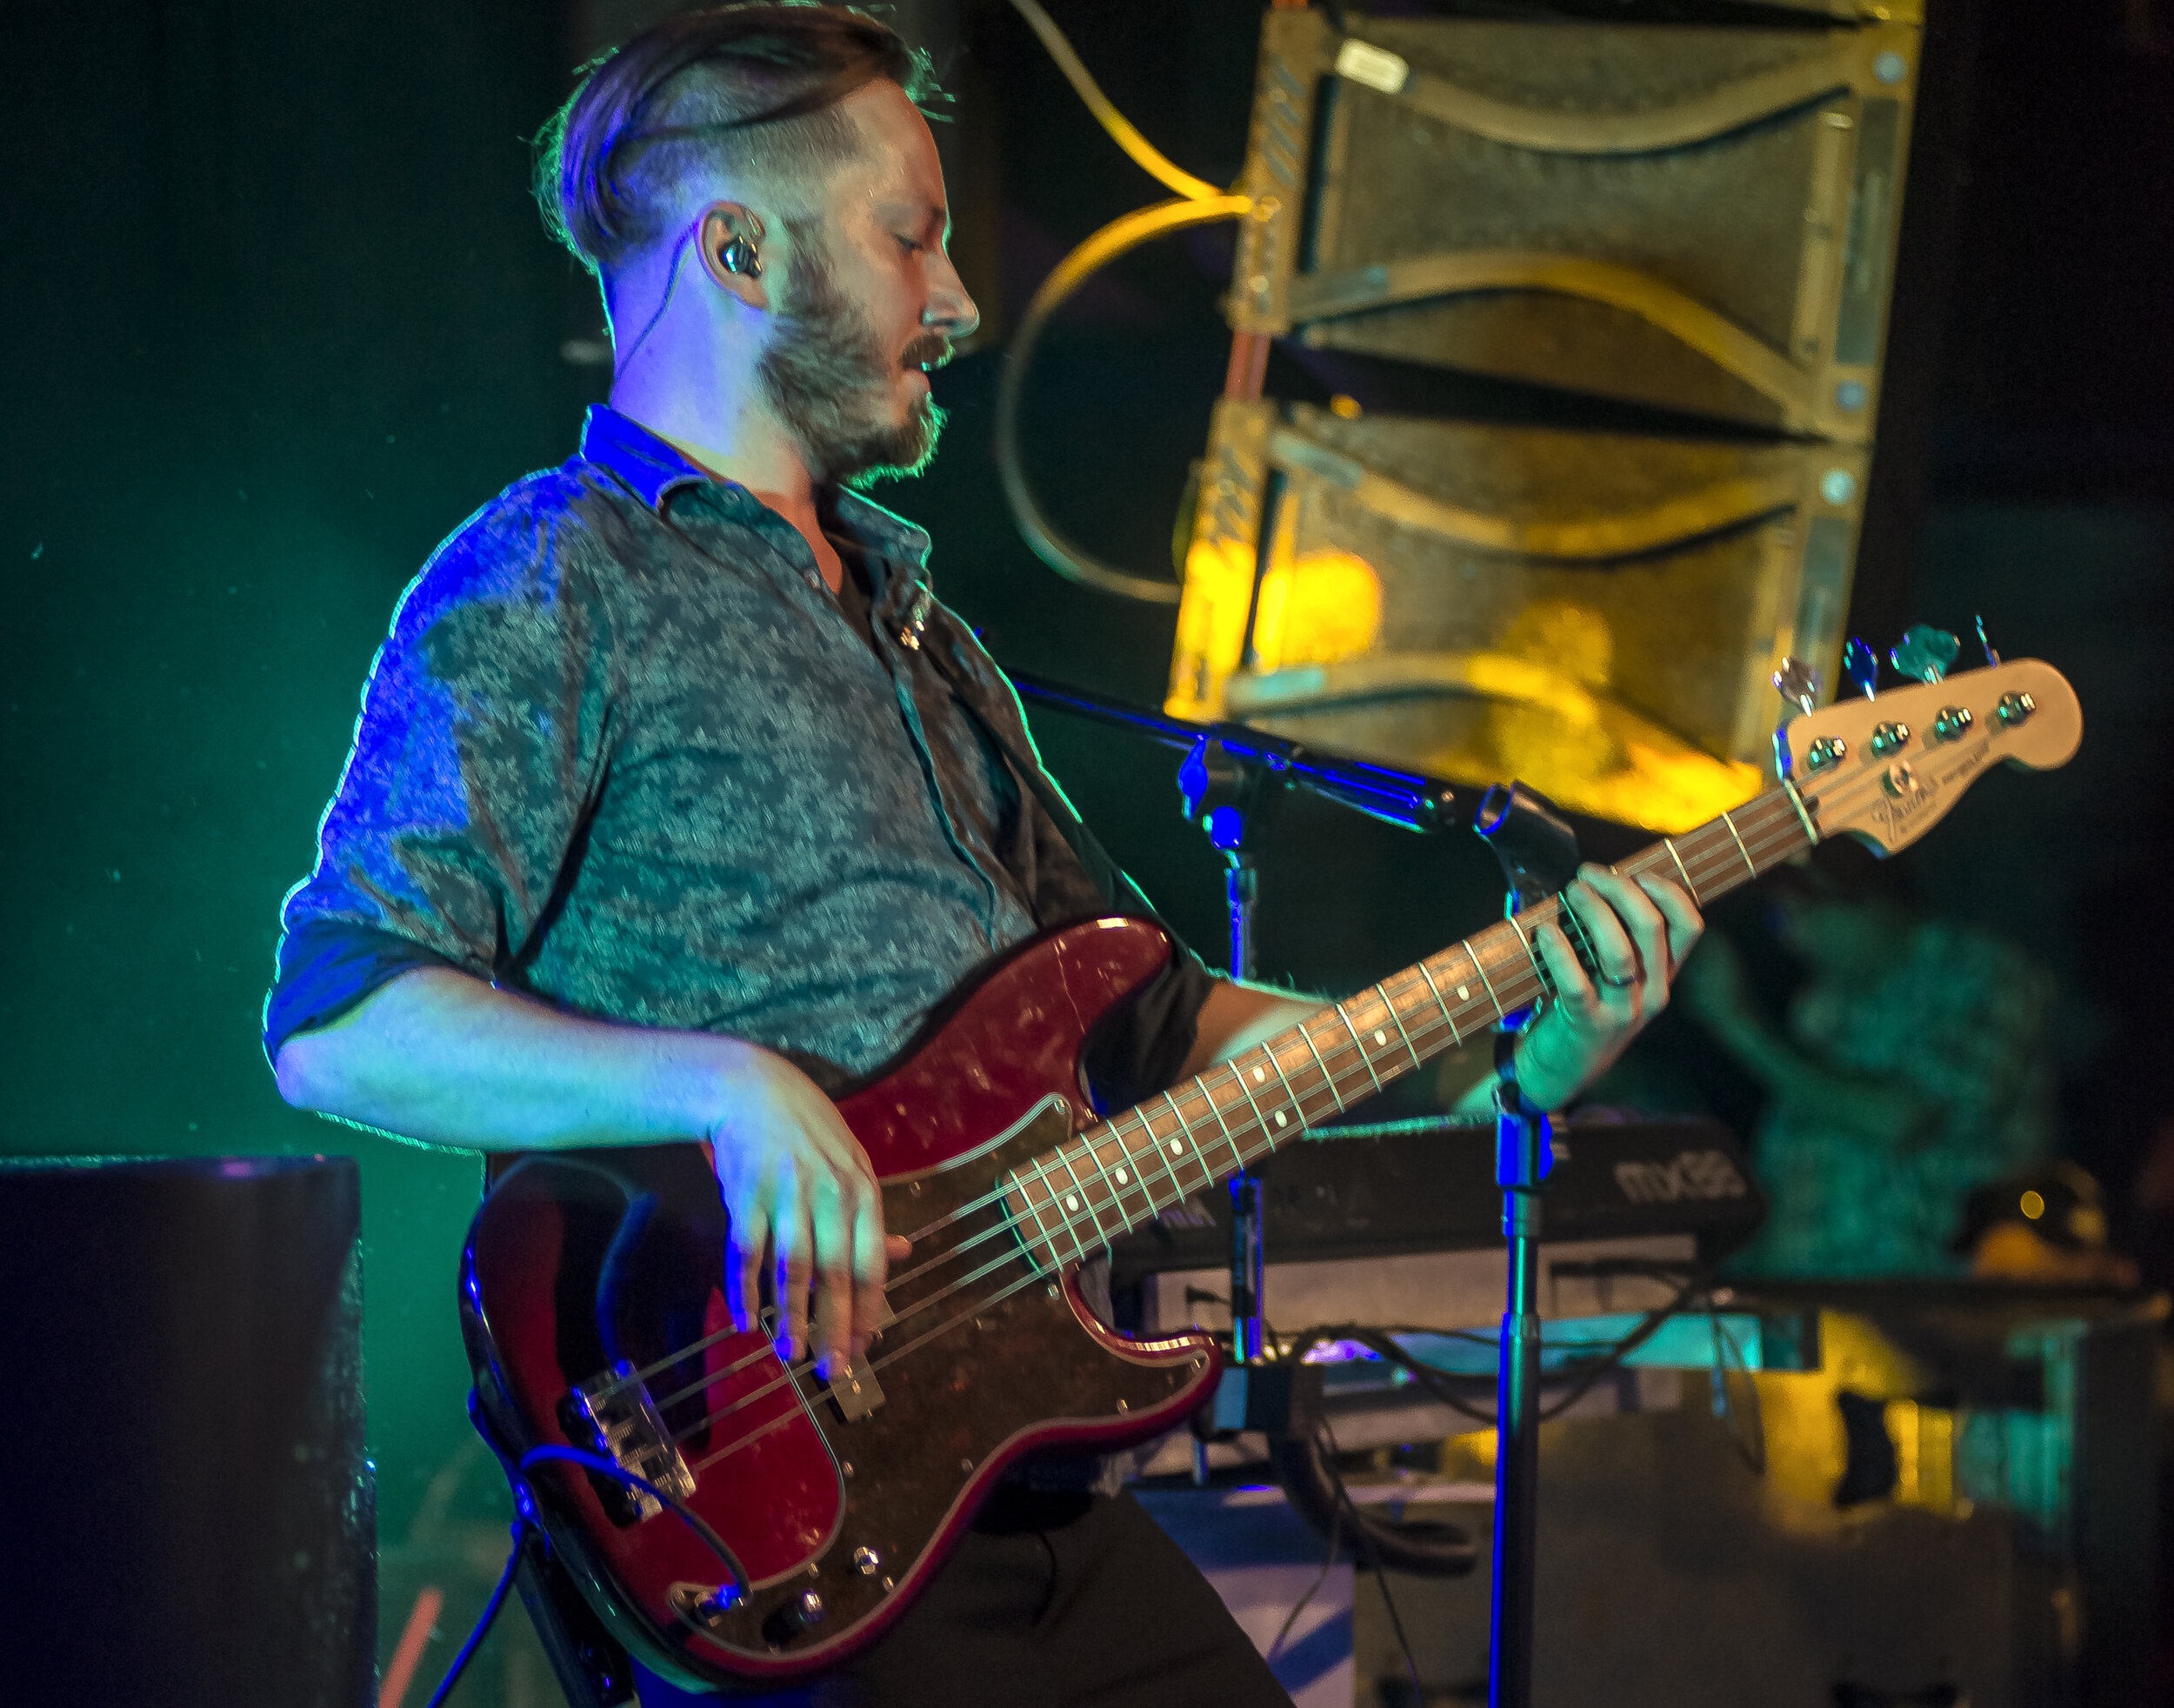 FRED UPDEGRAFT   bass guitar/Vocals - Fred Updegraft is an astonishingly gifted bassist and occasional drummer of The Stranger, but his natural talent far exceed what you would expect from someone as young as he is. A true